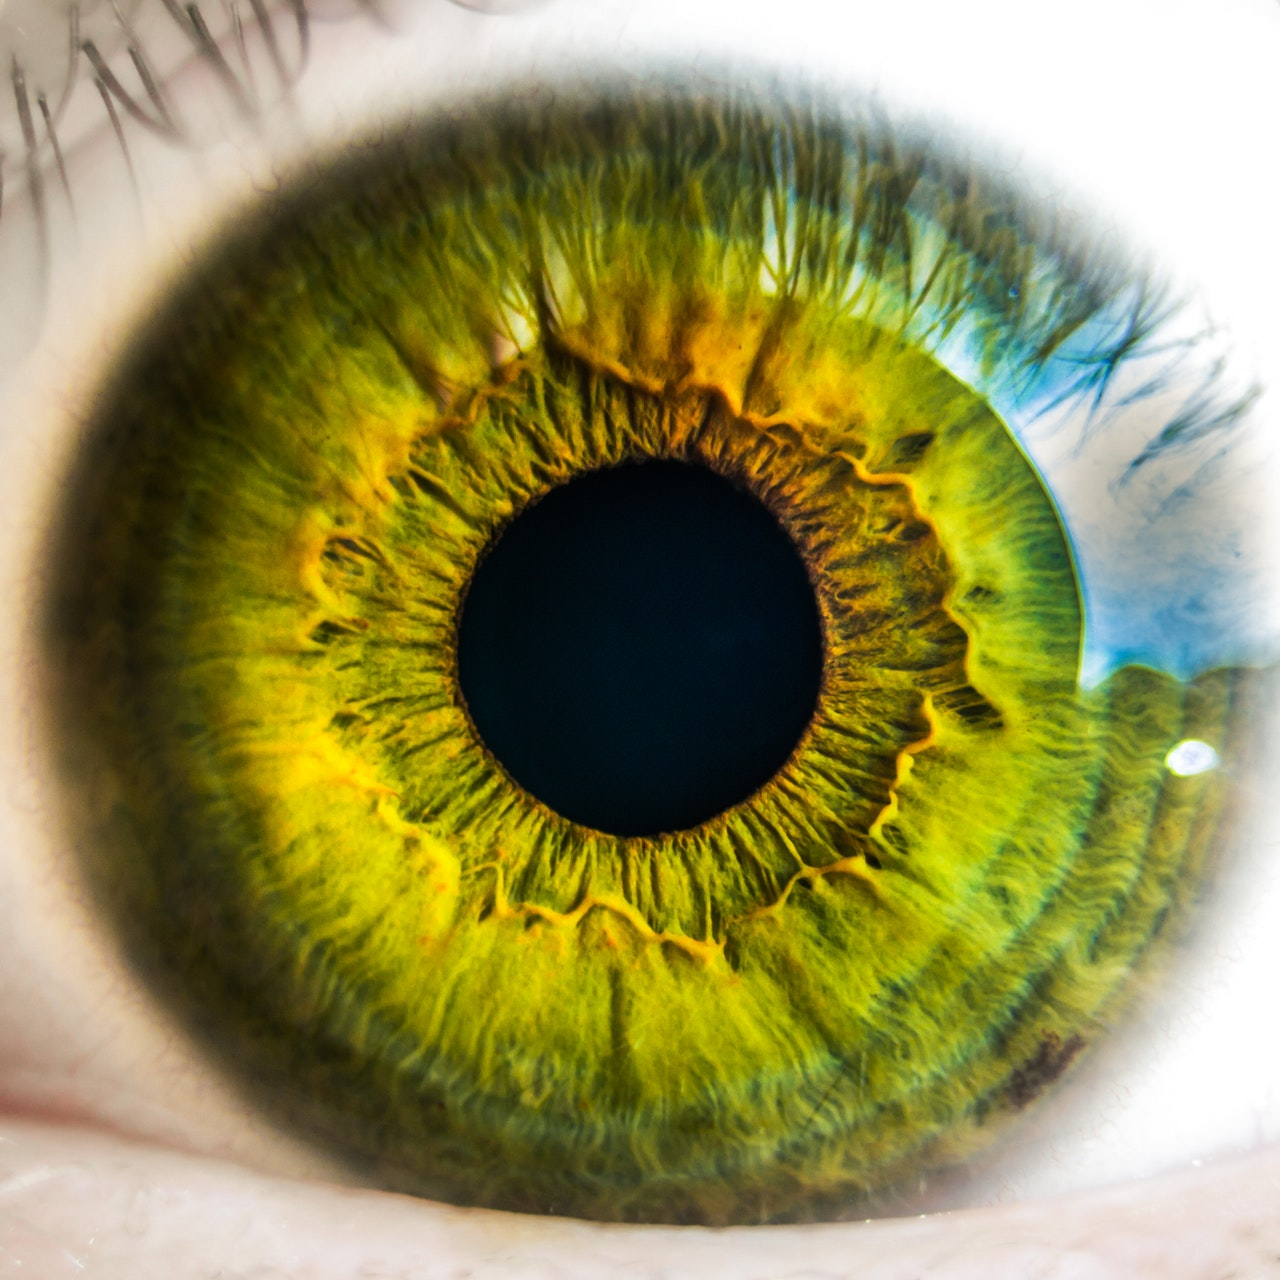 <p><strong>Trans-Ocular Brain Impedance</strong>Seeing the brain through the eye<i>More →</i></p>